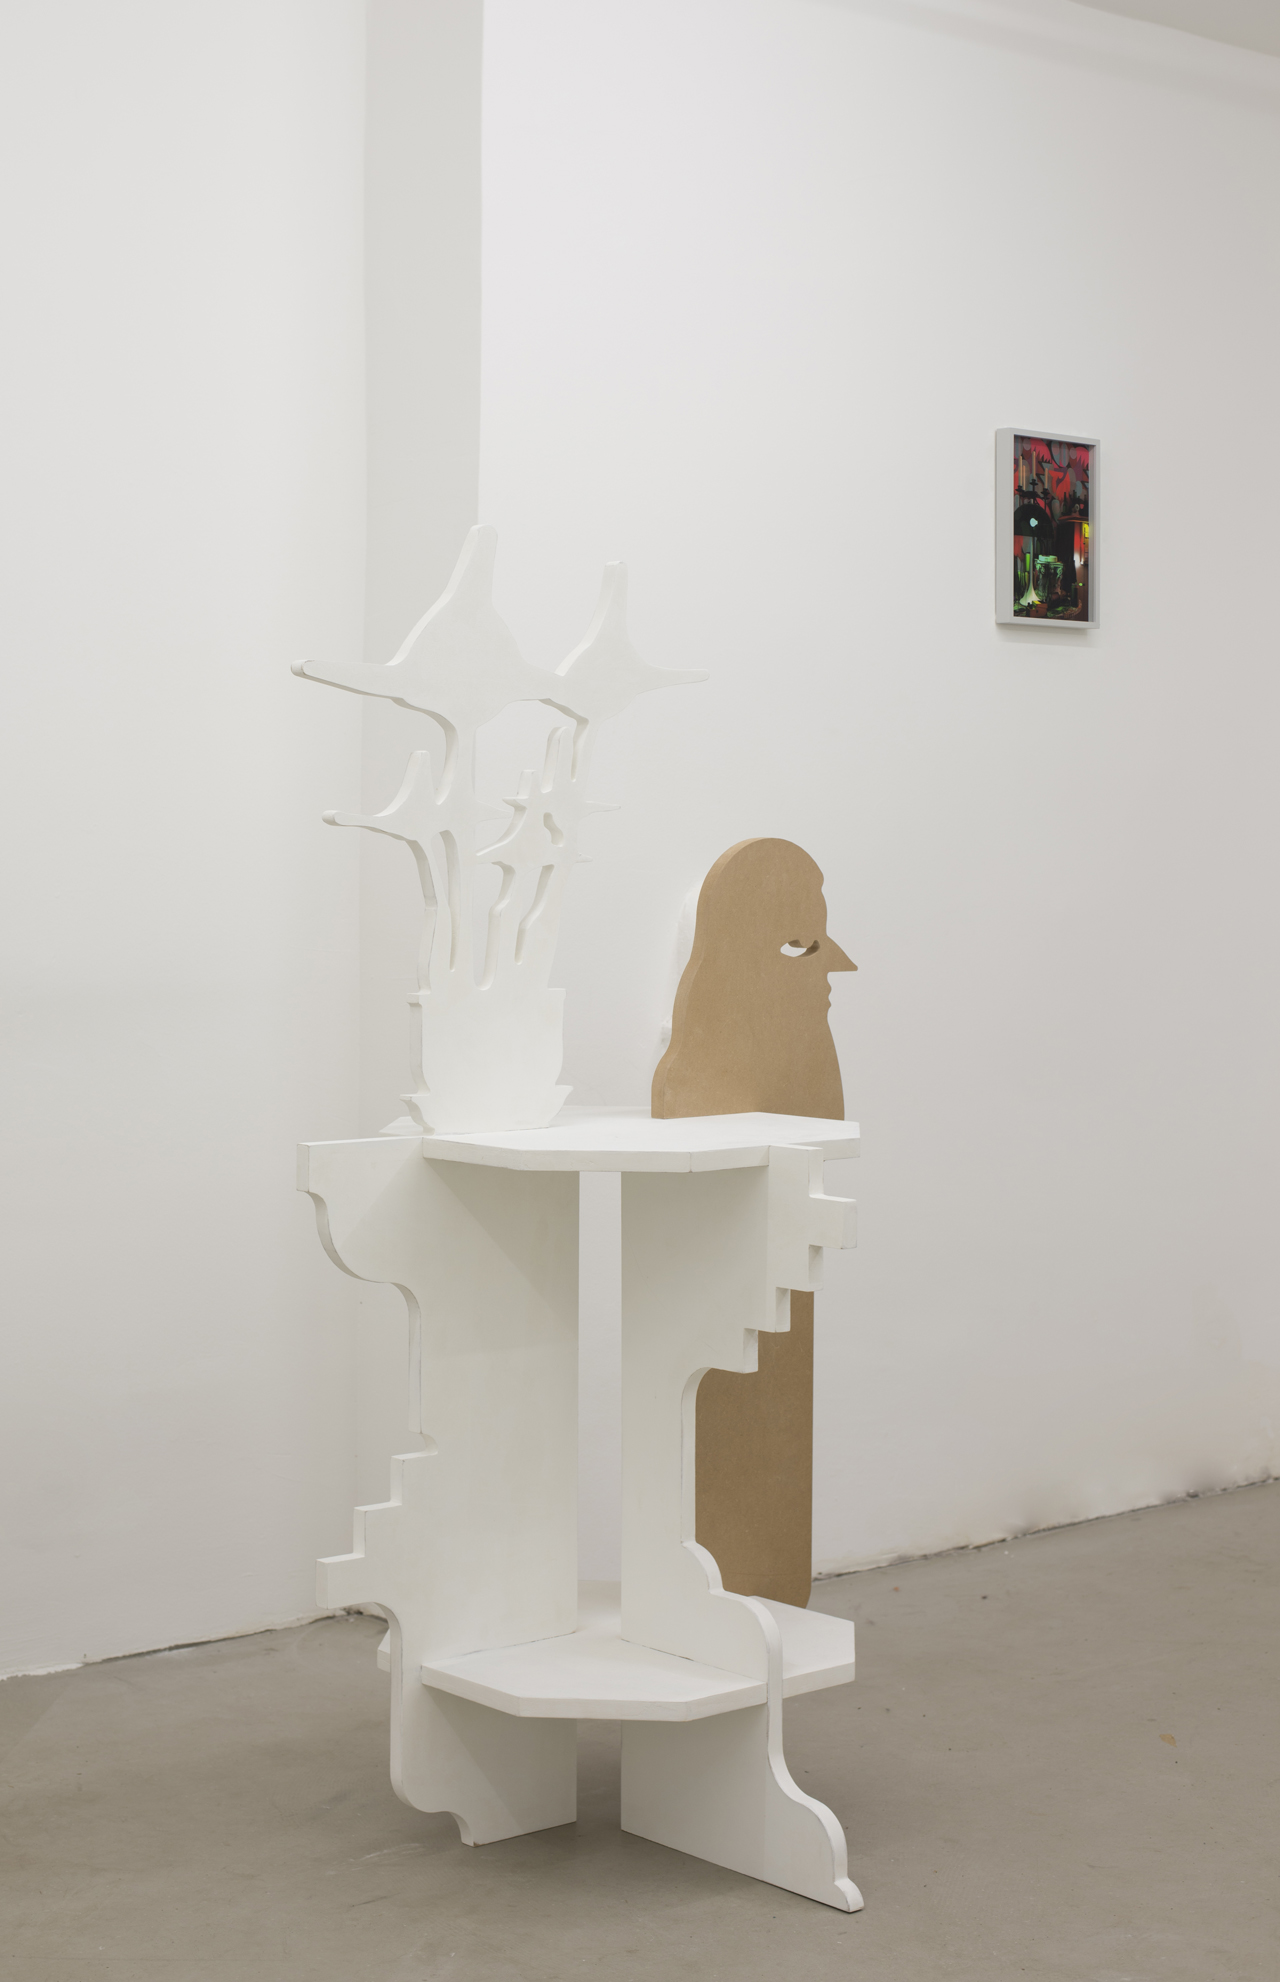 Alex Morrison, Up the Wooden Hill to Bedfordshire, installation view, MÉLANGE 2015.